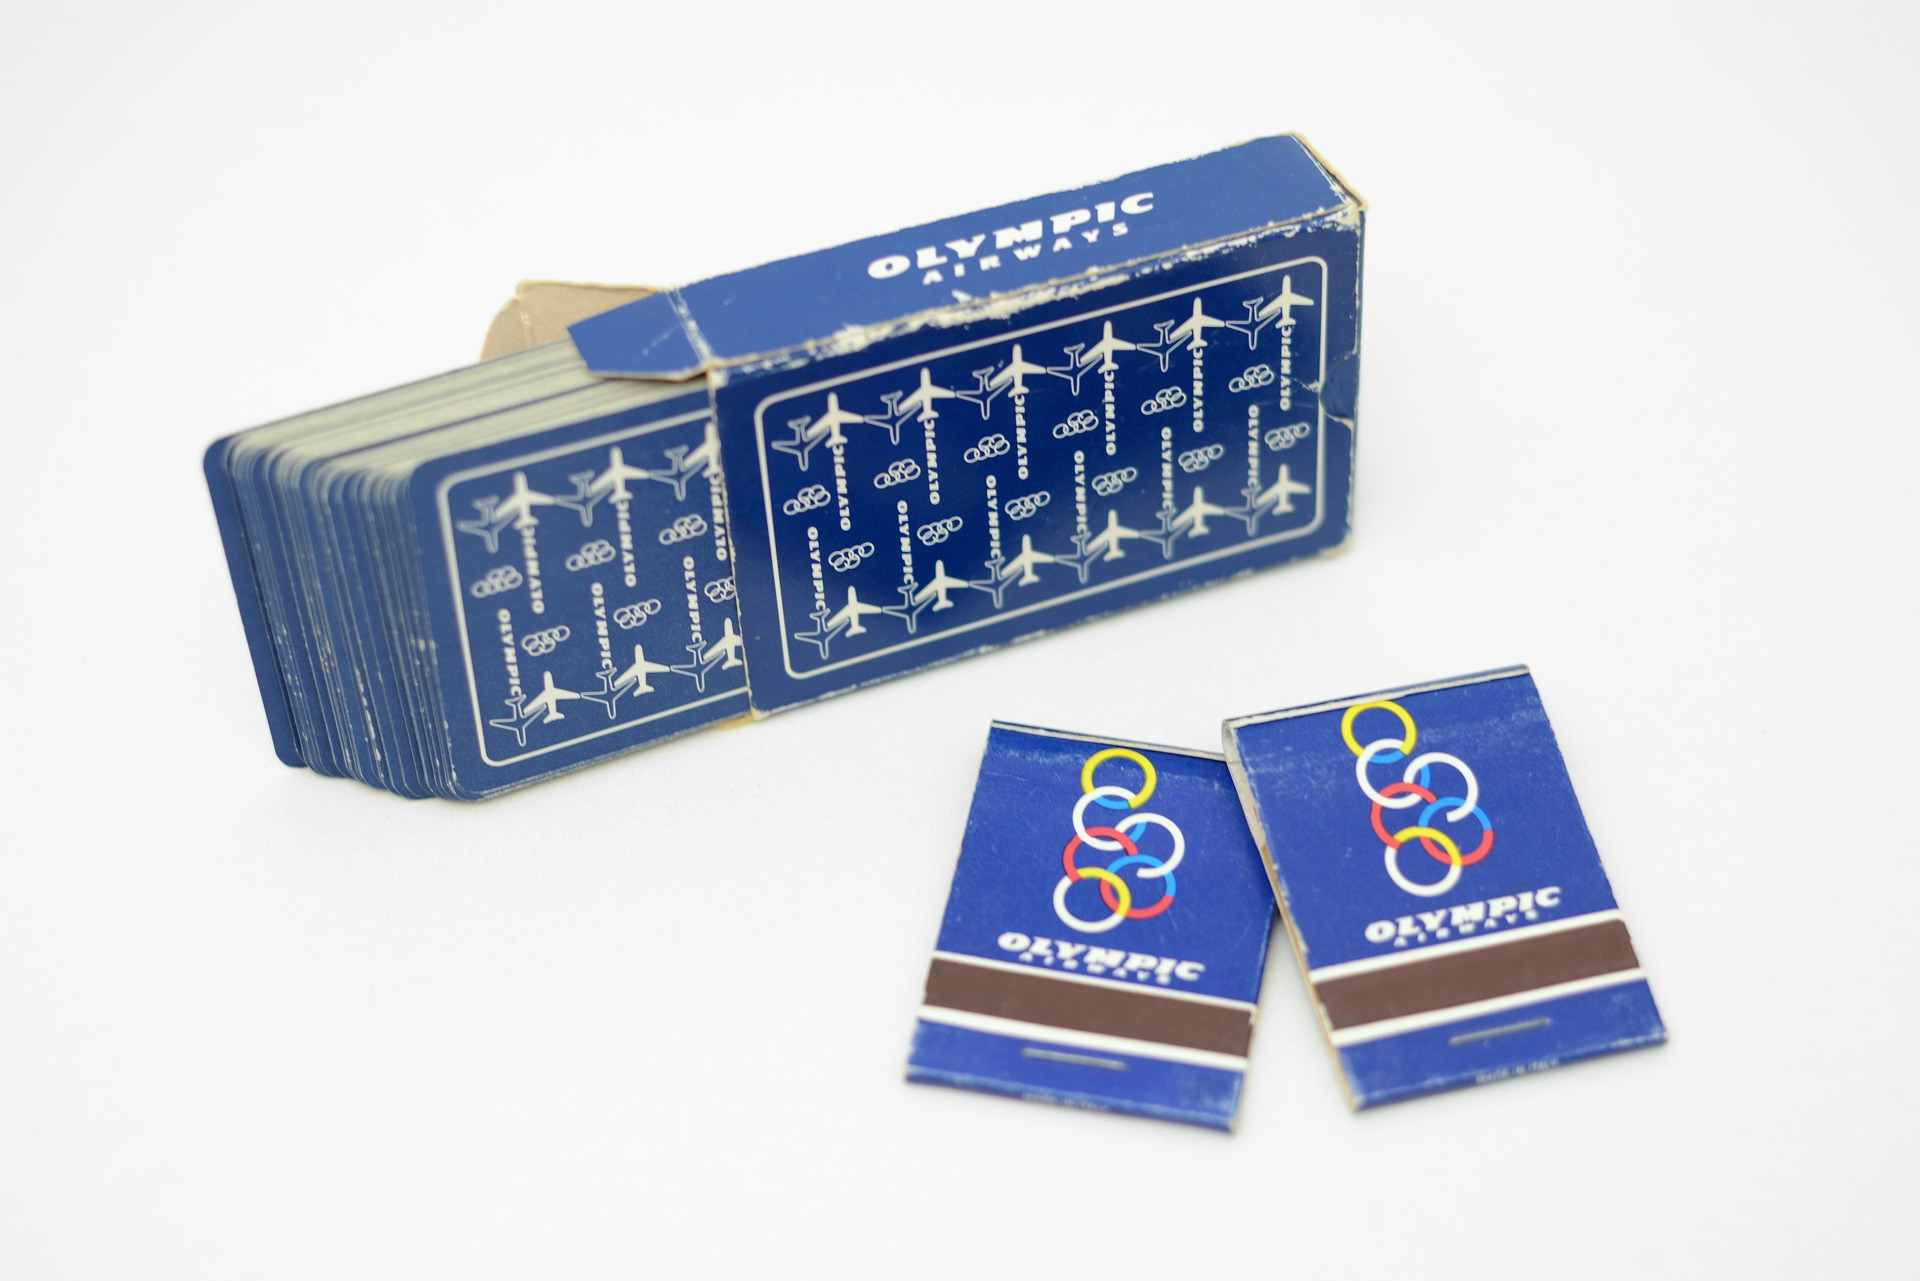 1980s Olympic Airways playing cards & matchbooks